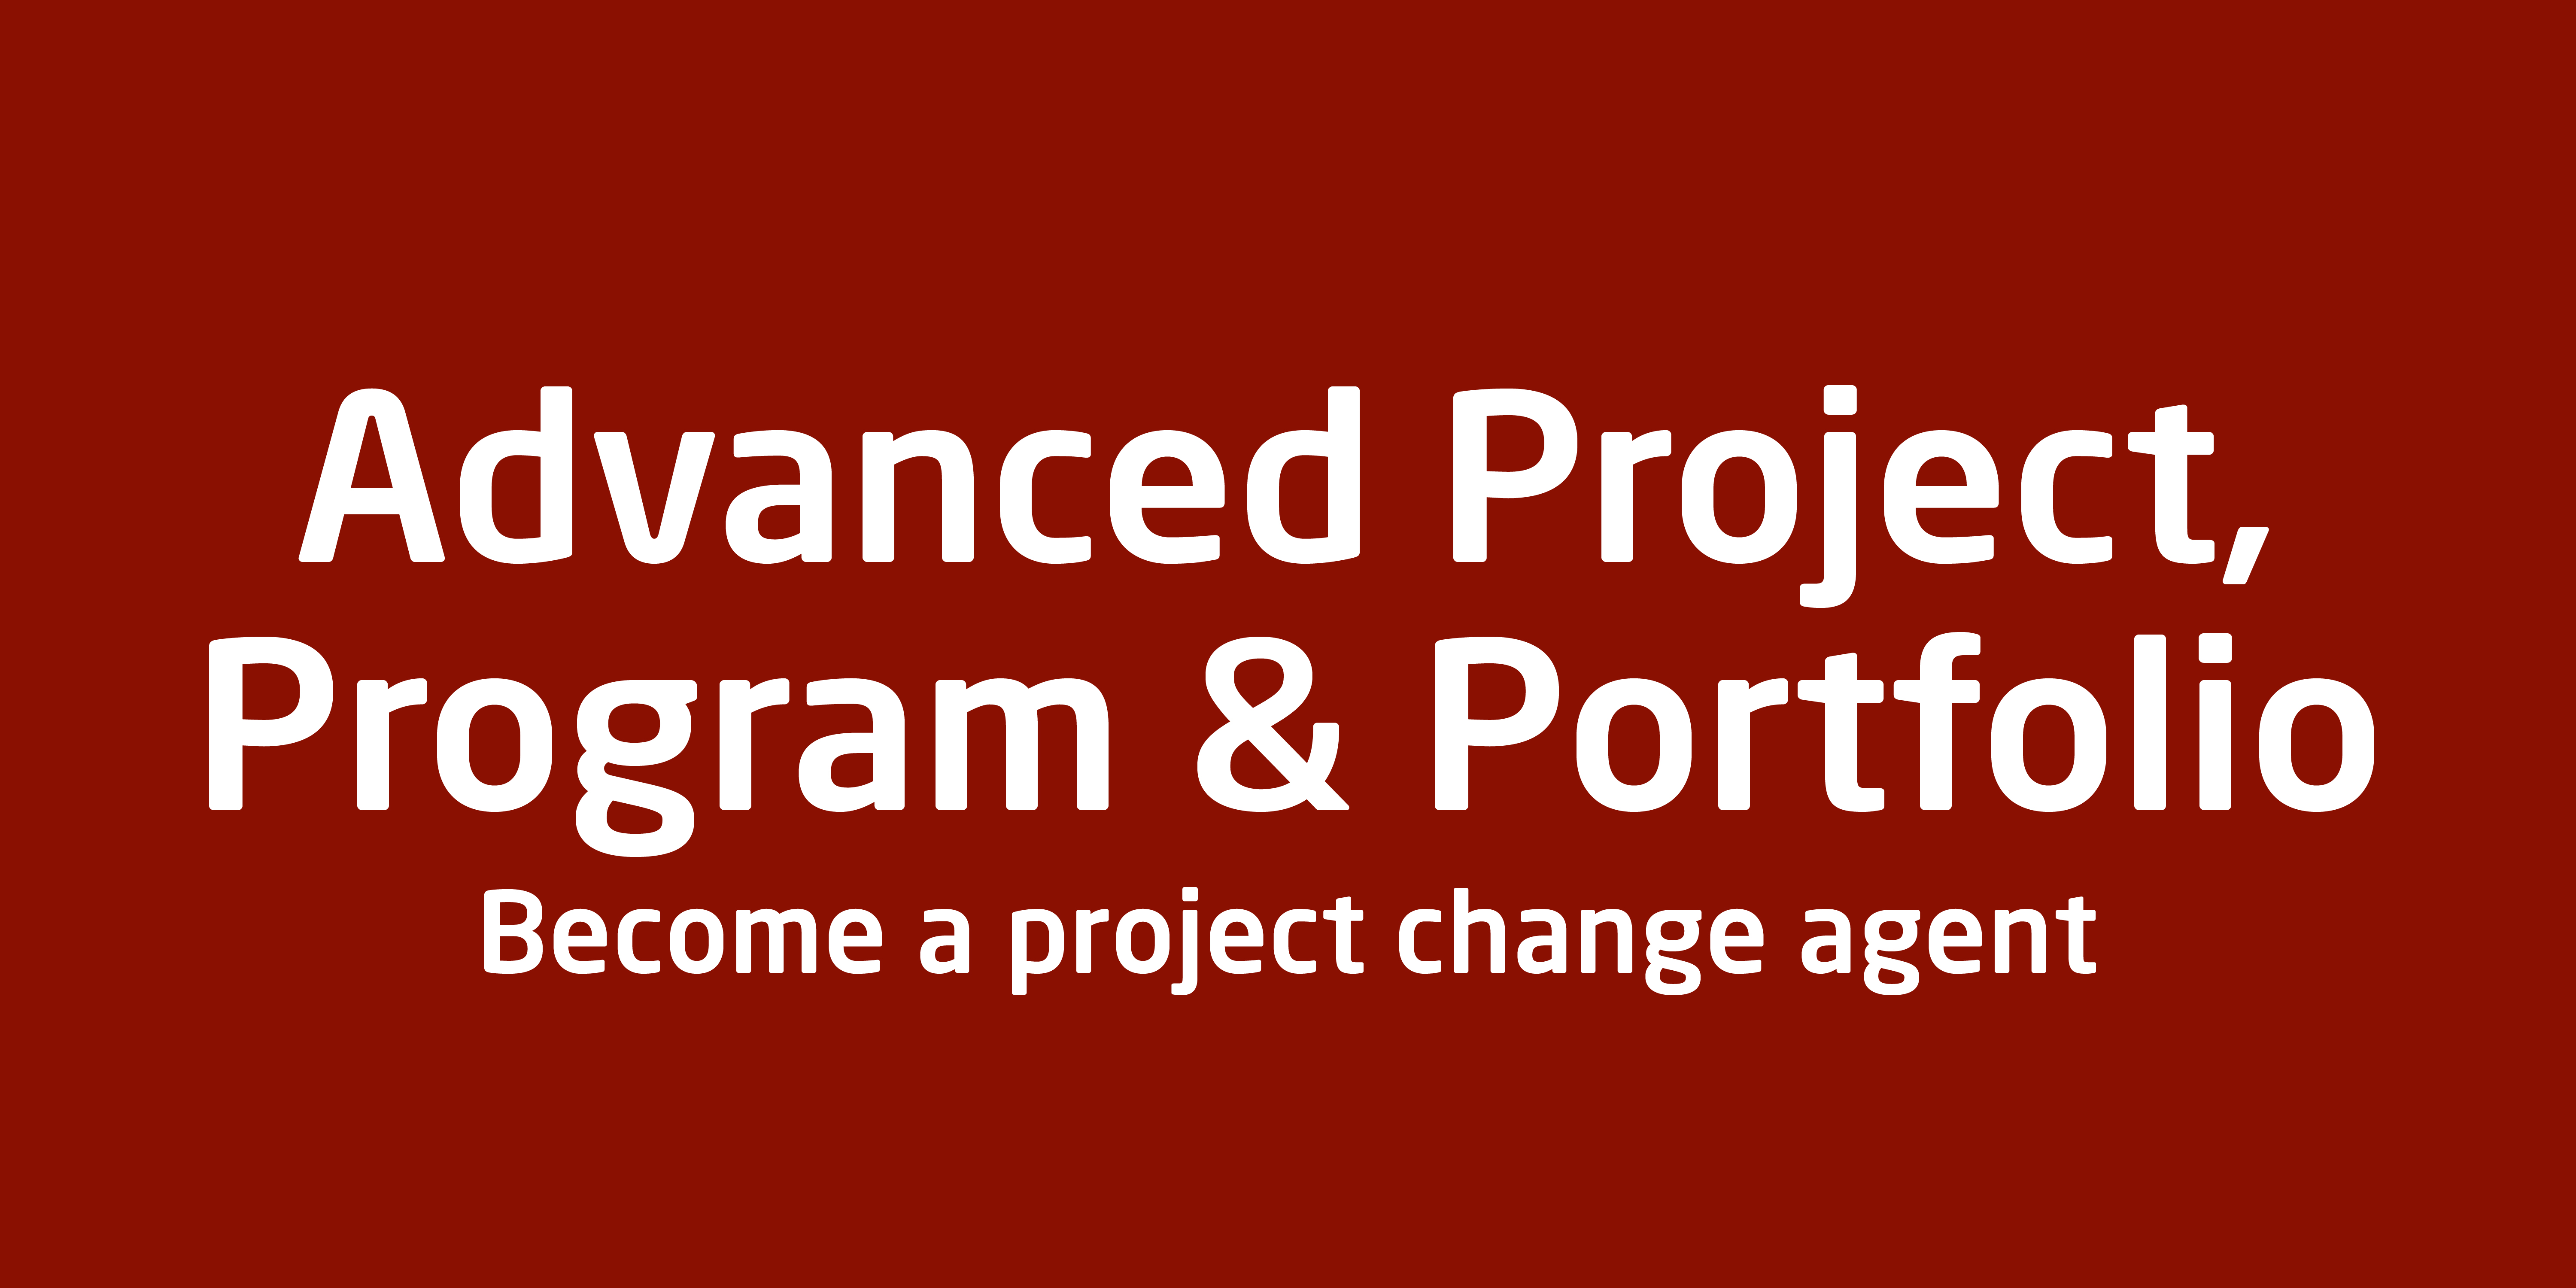 Advanced Project & portfolio management